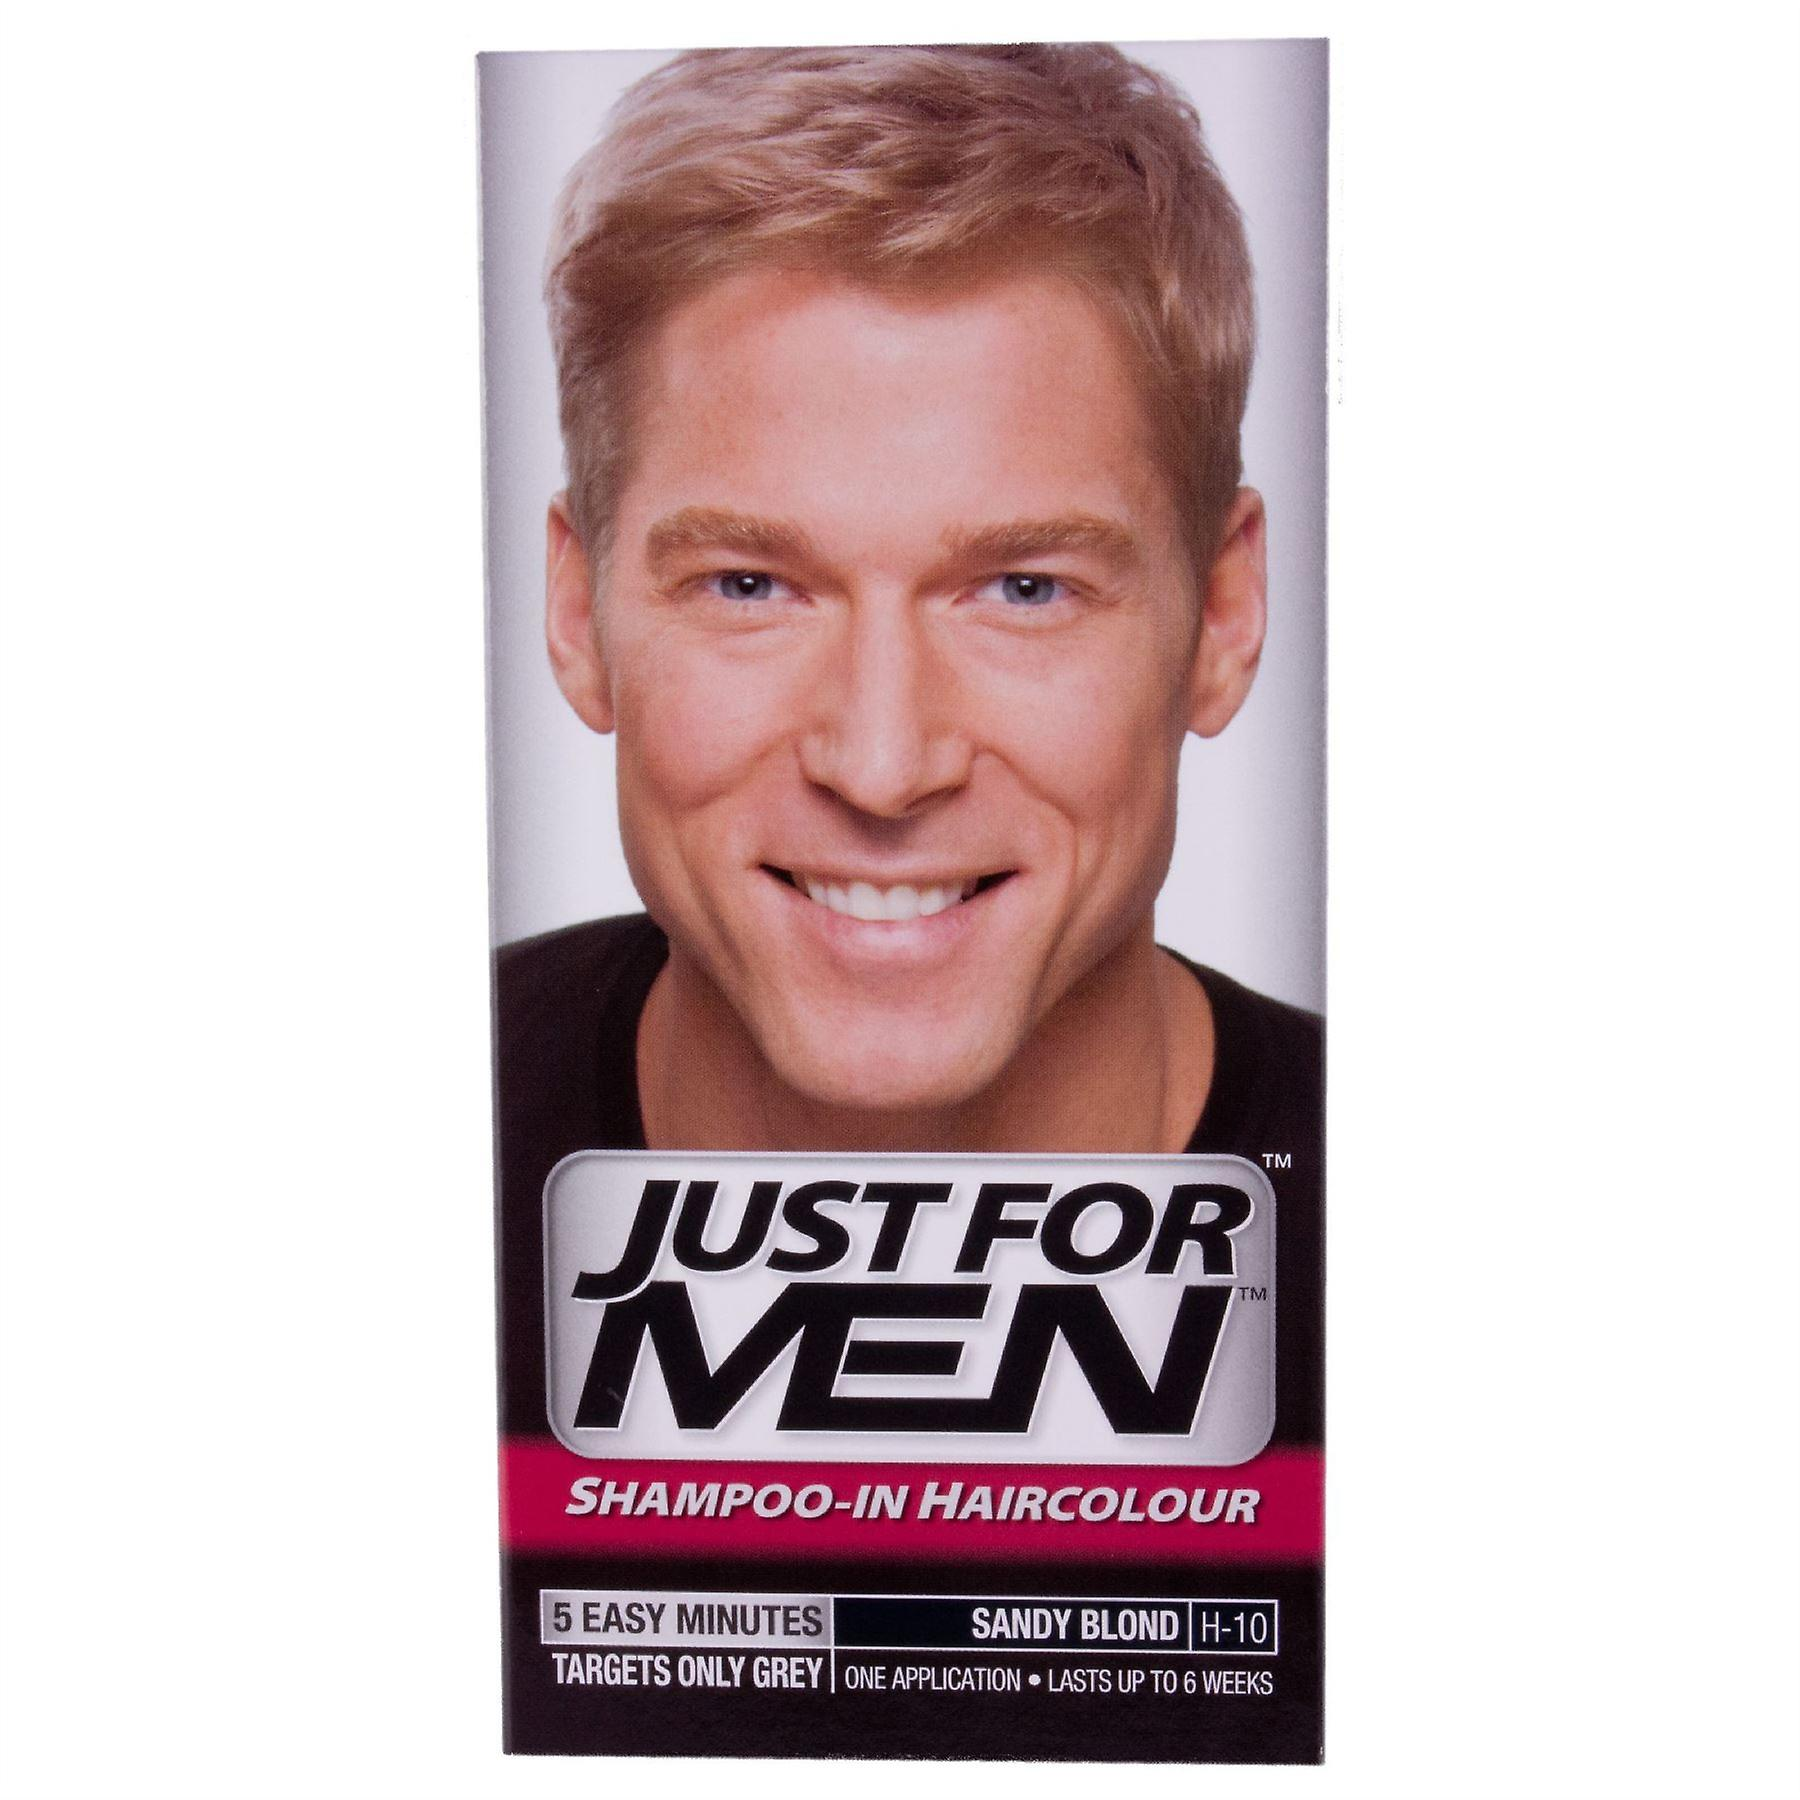 Just For Men Shampoo In Hair Colour -Sandy Blonde H10